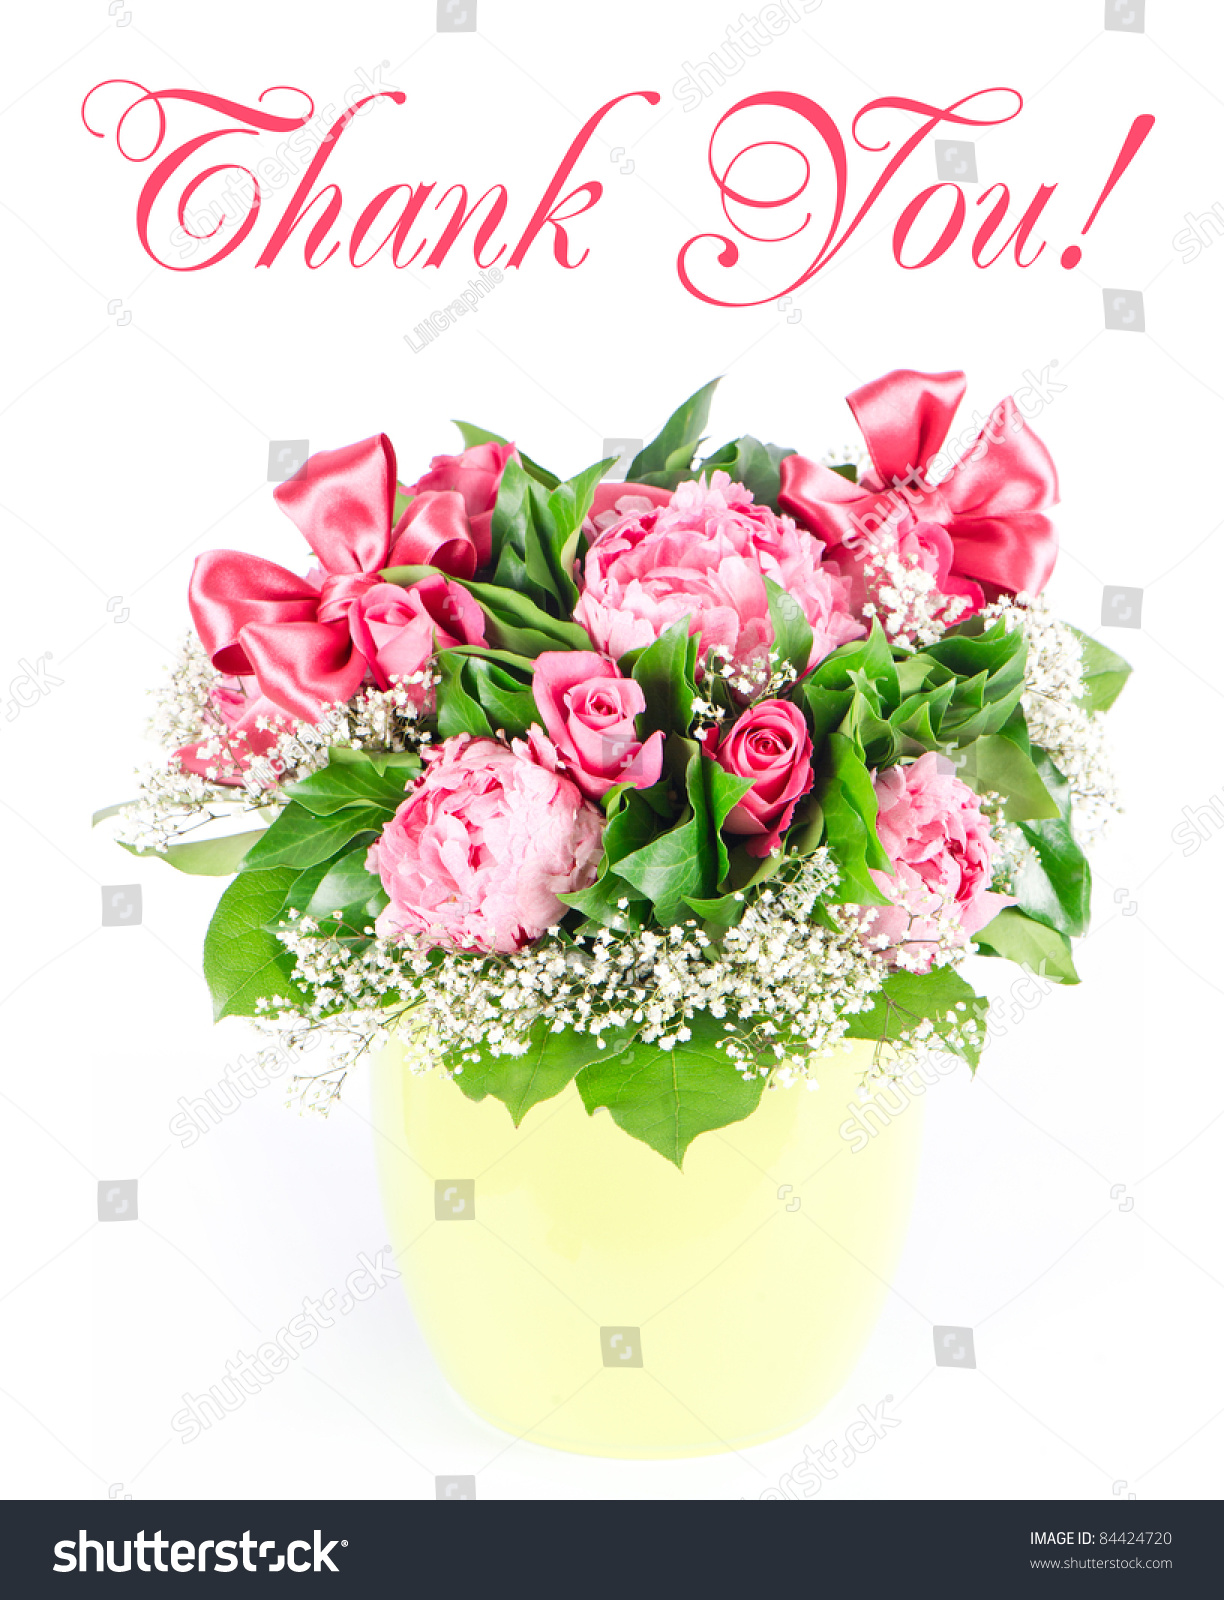 Thank you card concept colorful flowers stock photo royalty free thank you card concept colorful flowers bouquet with ribbon pink roses and peonies izmirmasajfo Images